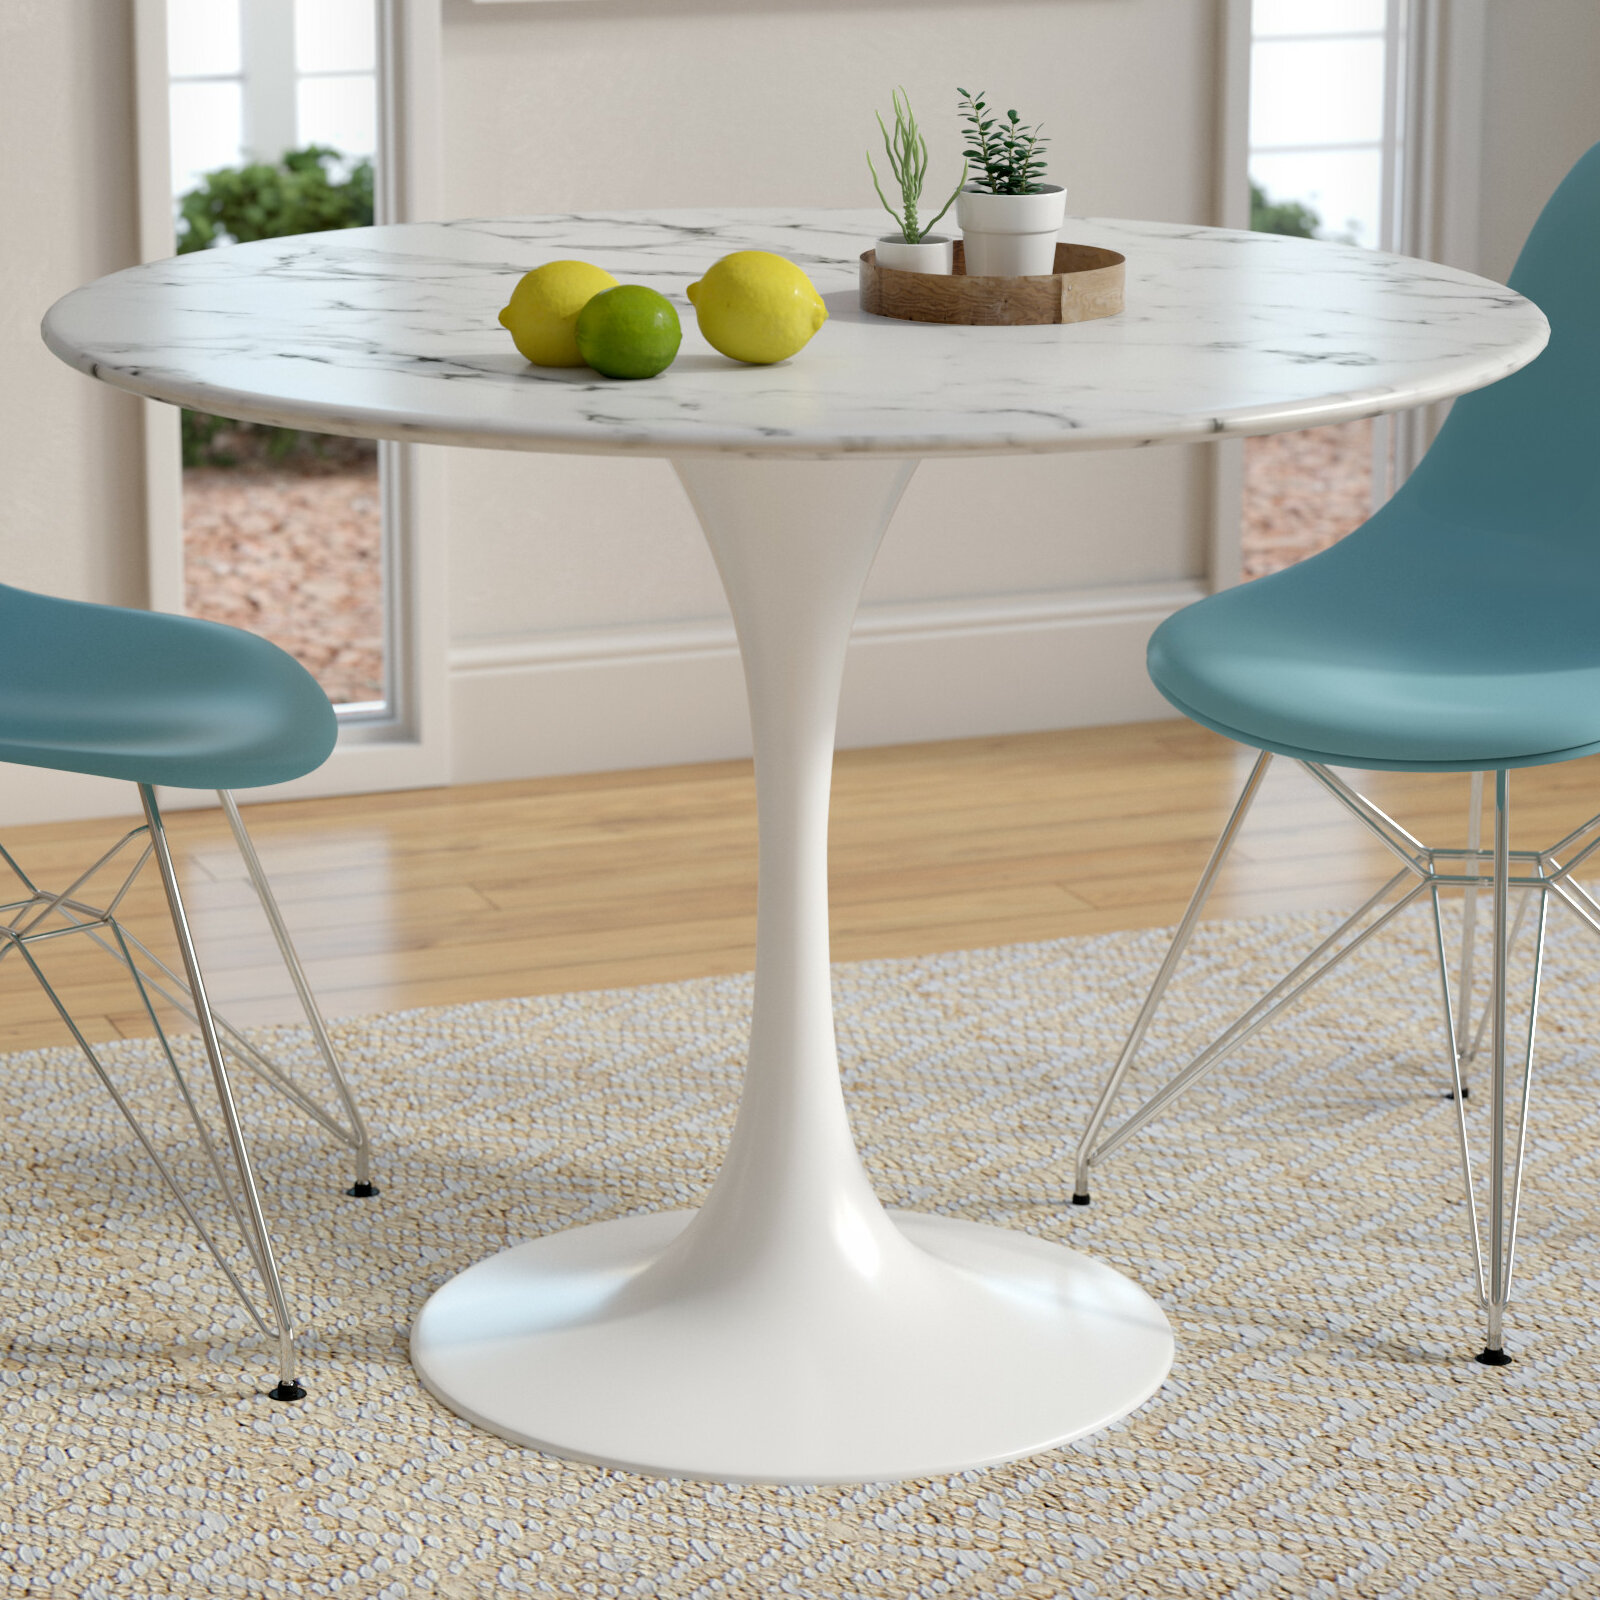 Langley street julien artificial marble dining table reviews wayfair